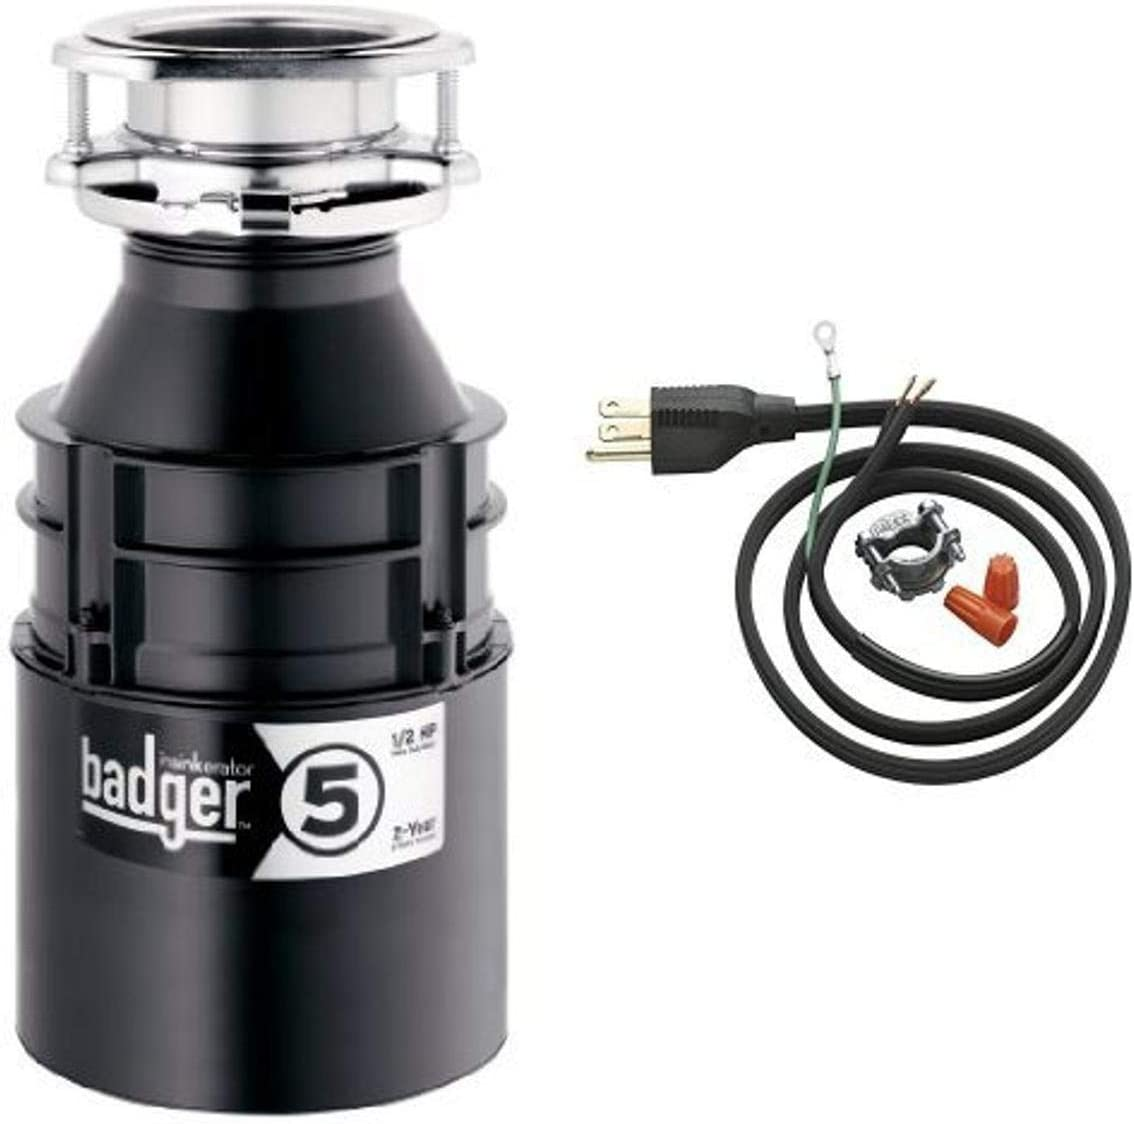 InSinkErator Badger 5 1 2 HP Food Waste Disposer and Power Cord Kit